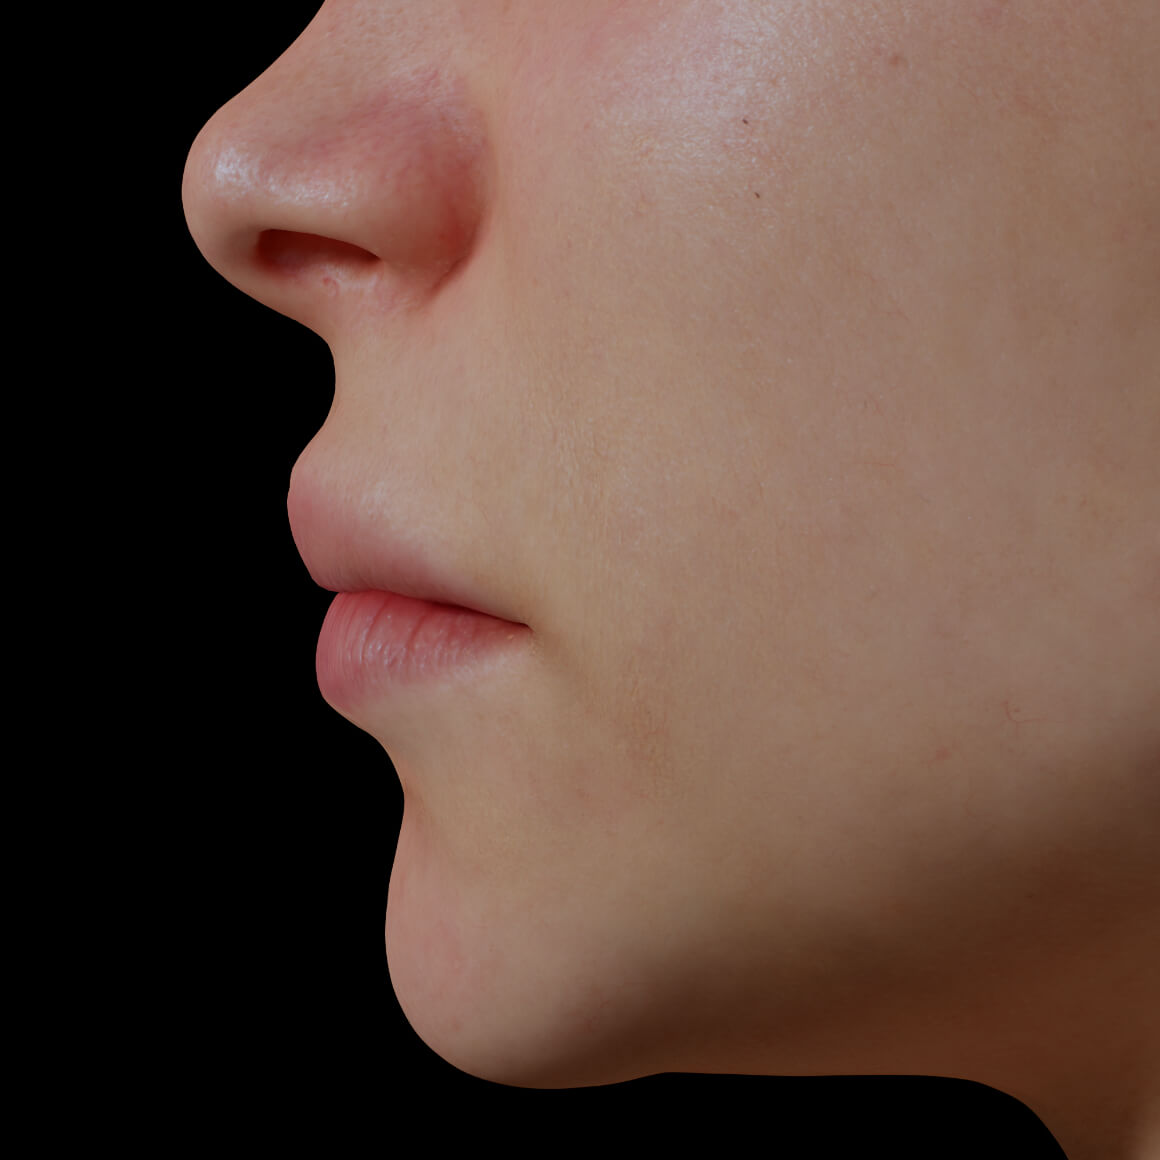 A Clinique Chloé female patient positioned sideways after dermal filler injections to increase lip volume